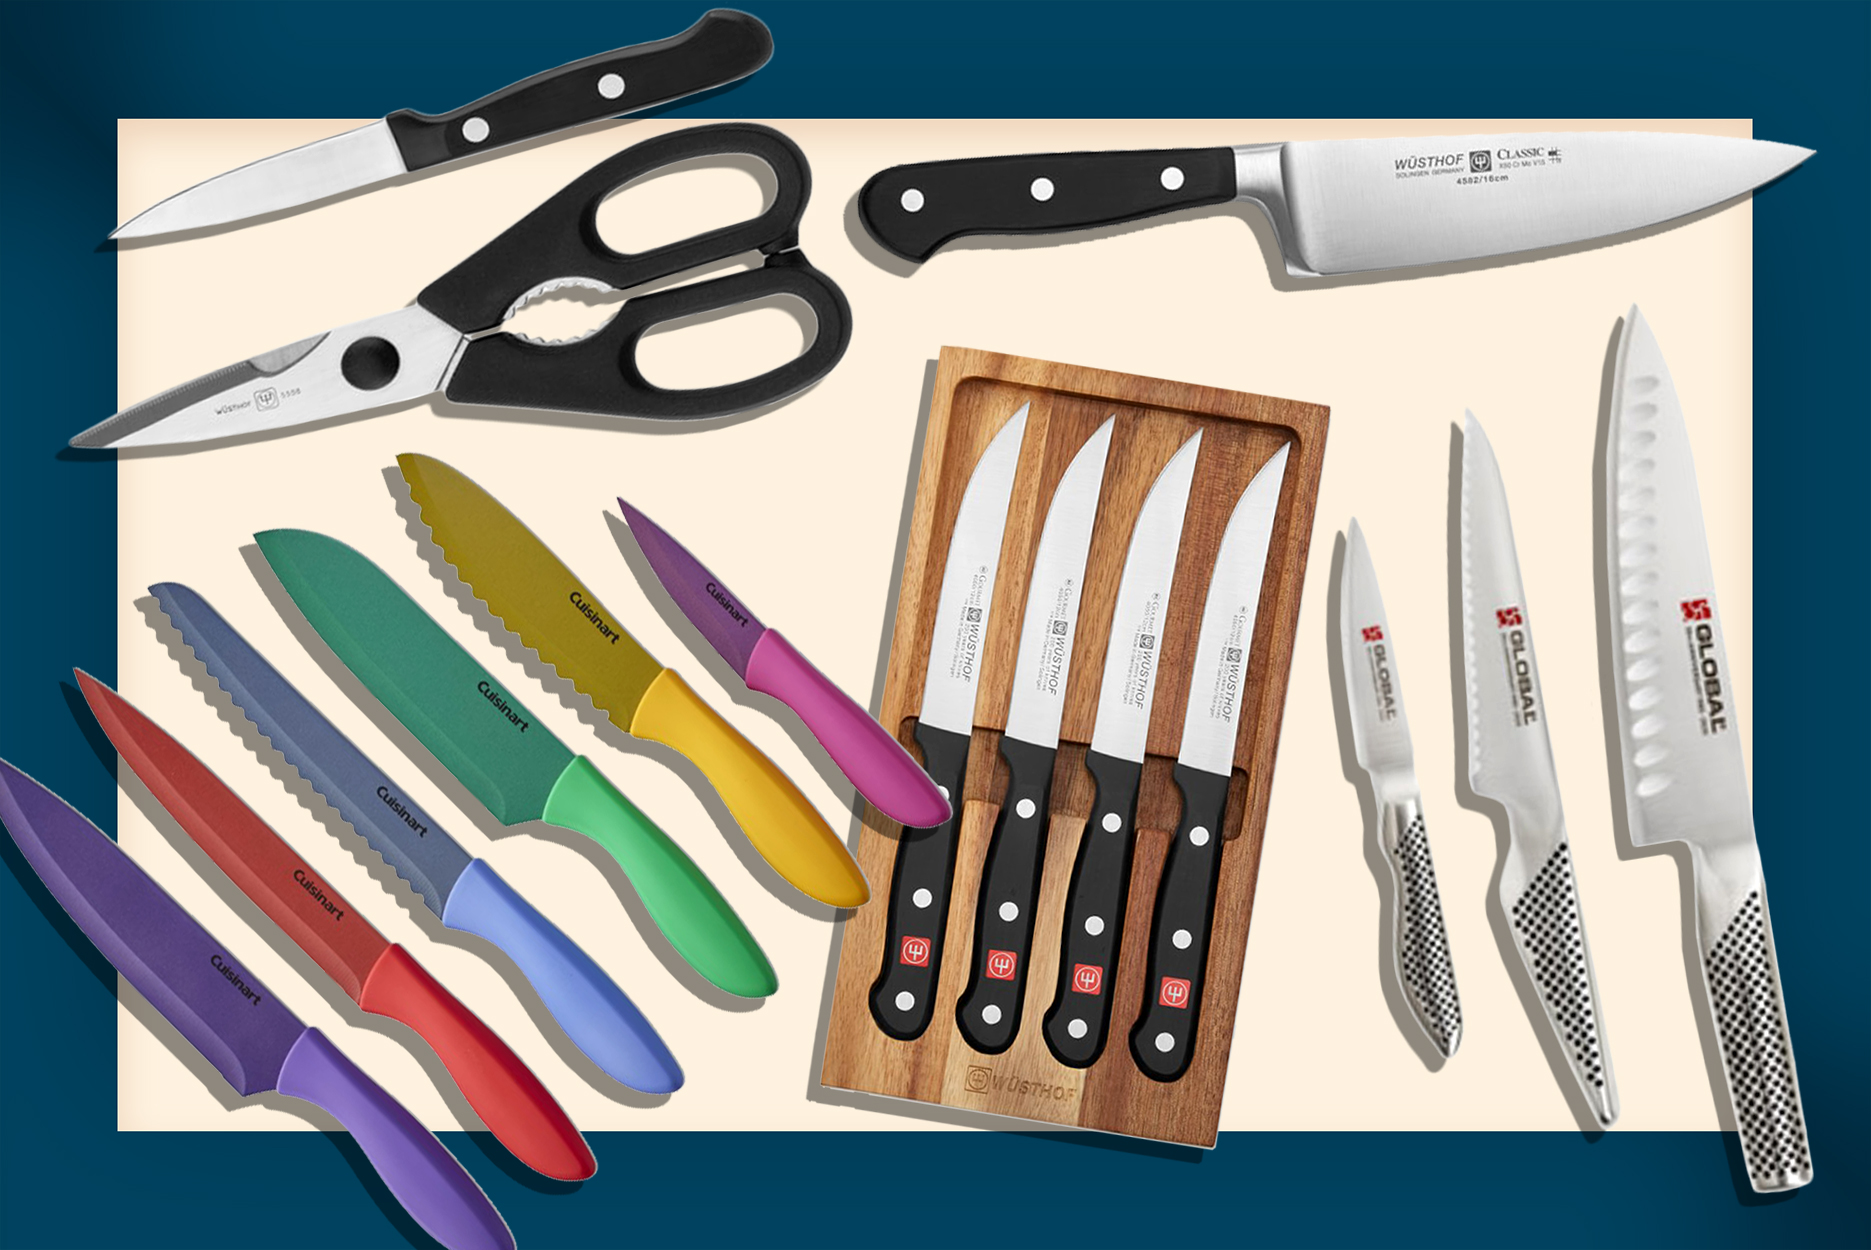 Our Favorite Knife Brands at Williams Sonoma Right Now